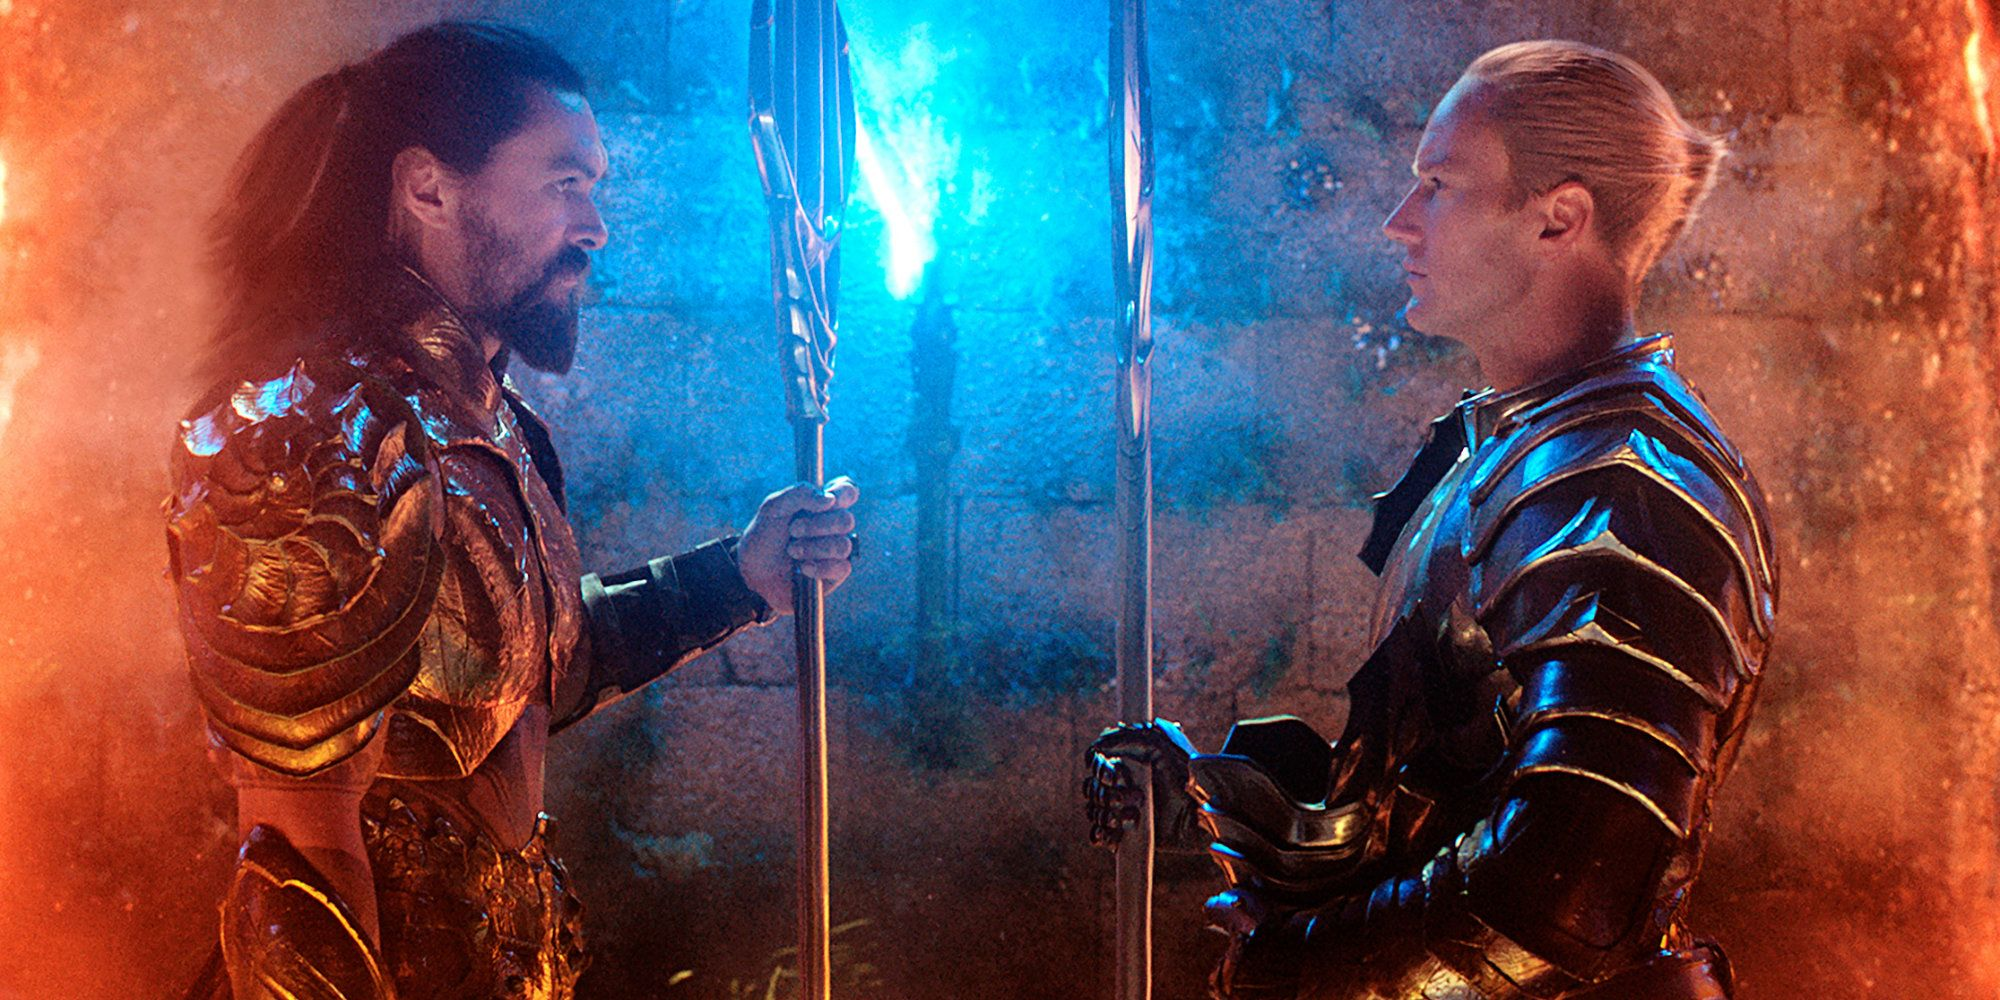 Aquaman Movie Images Offer First Look At King Orm Vulko